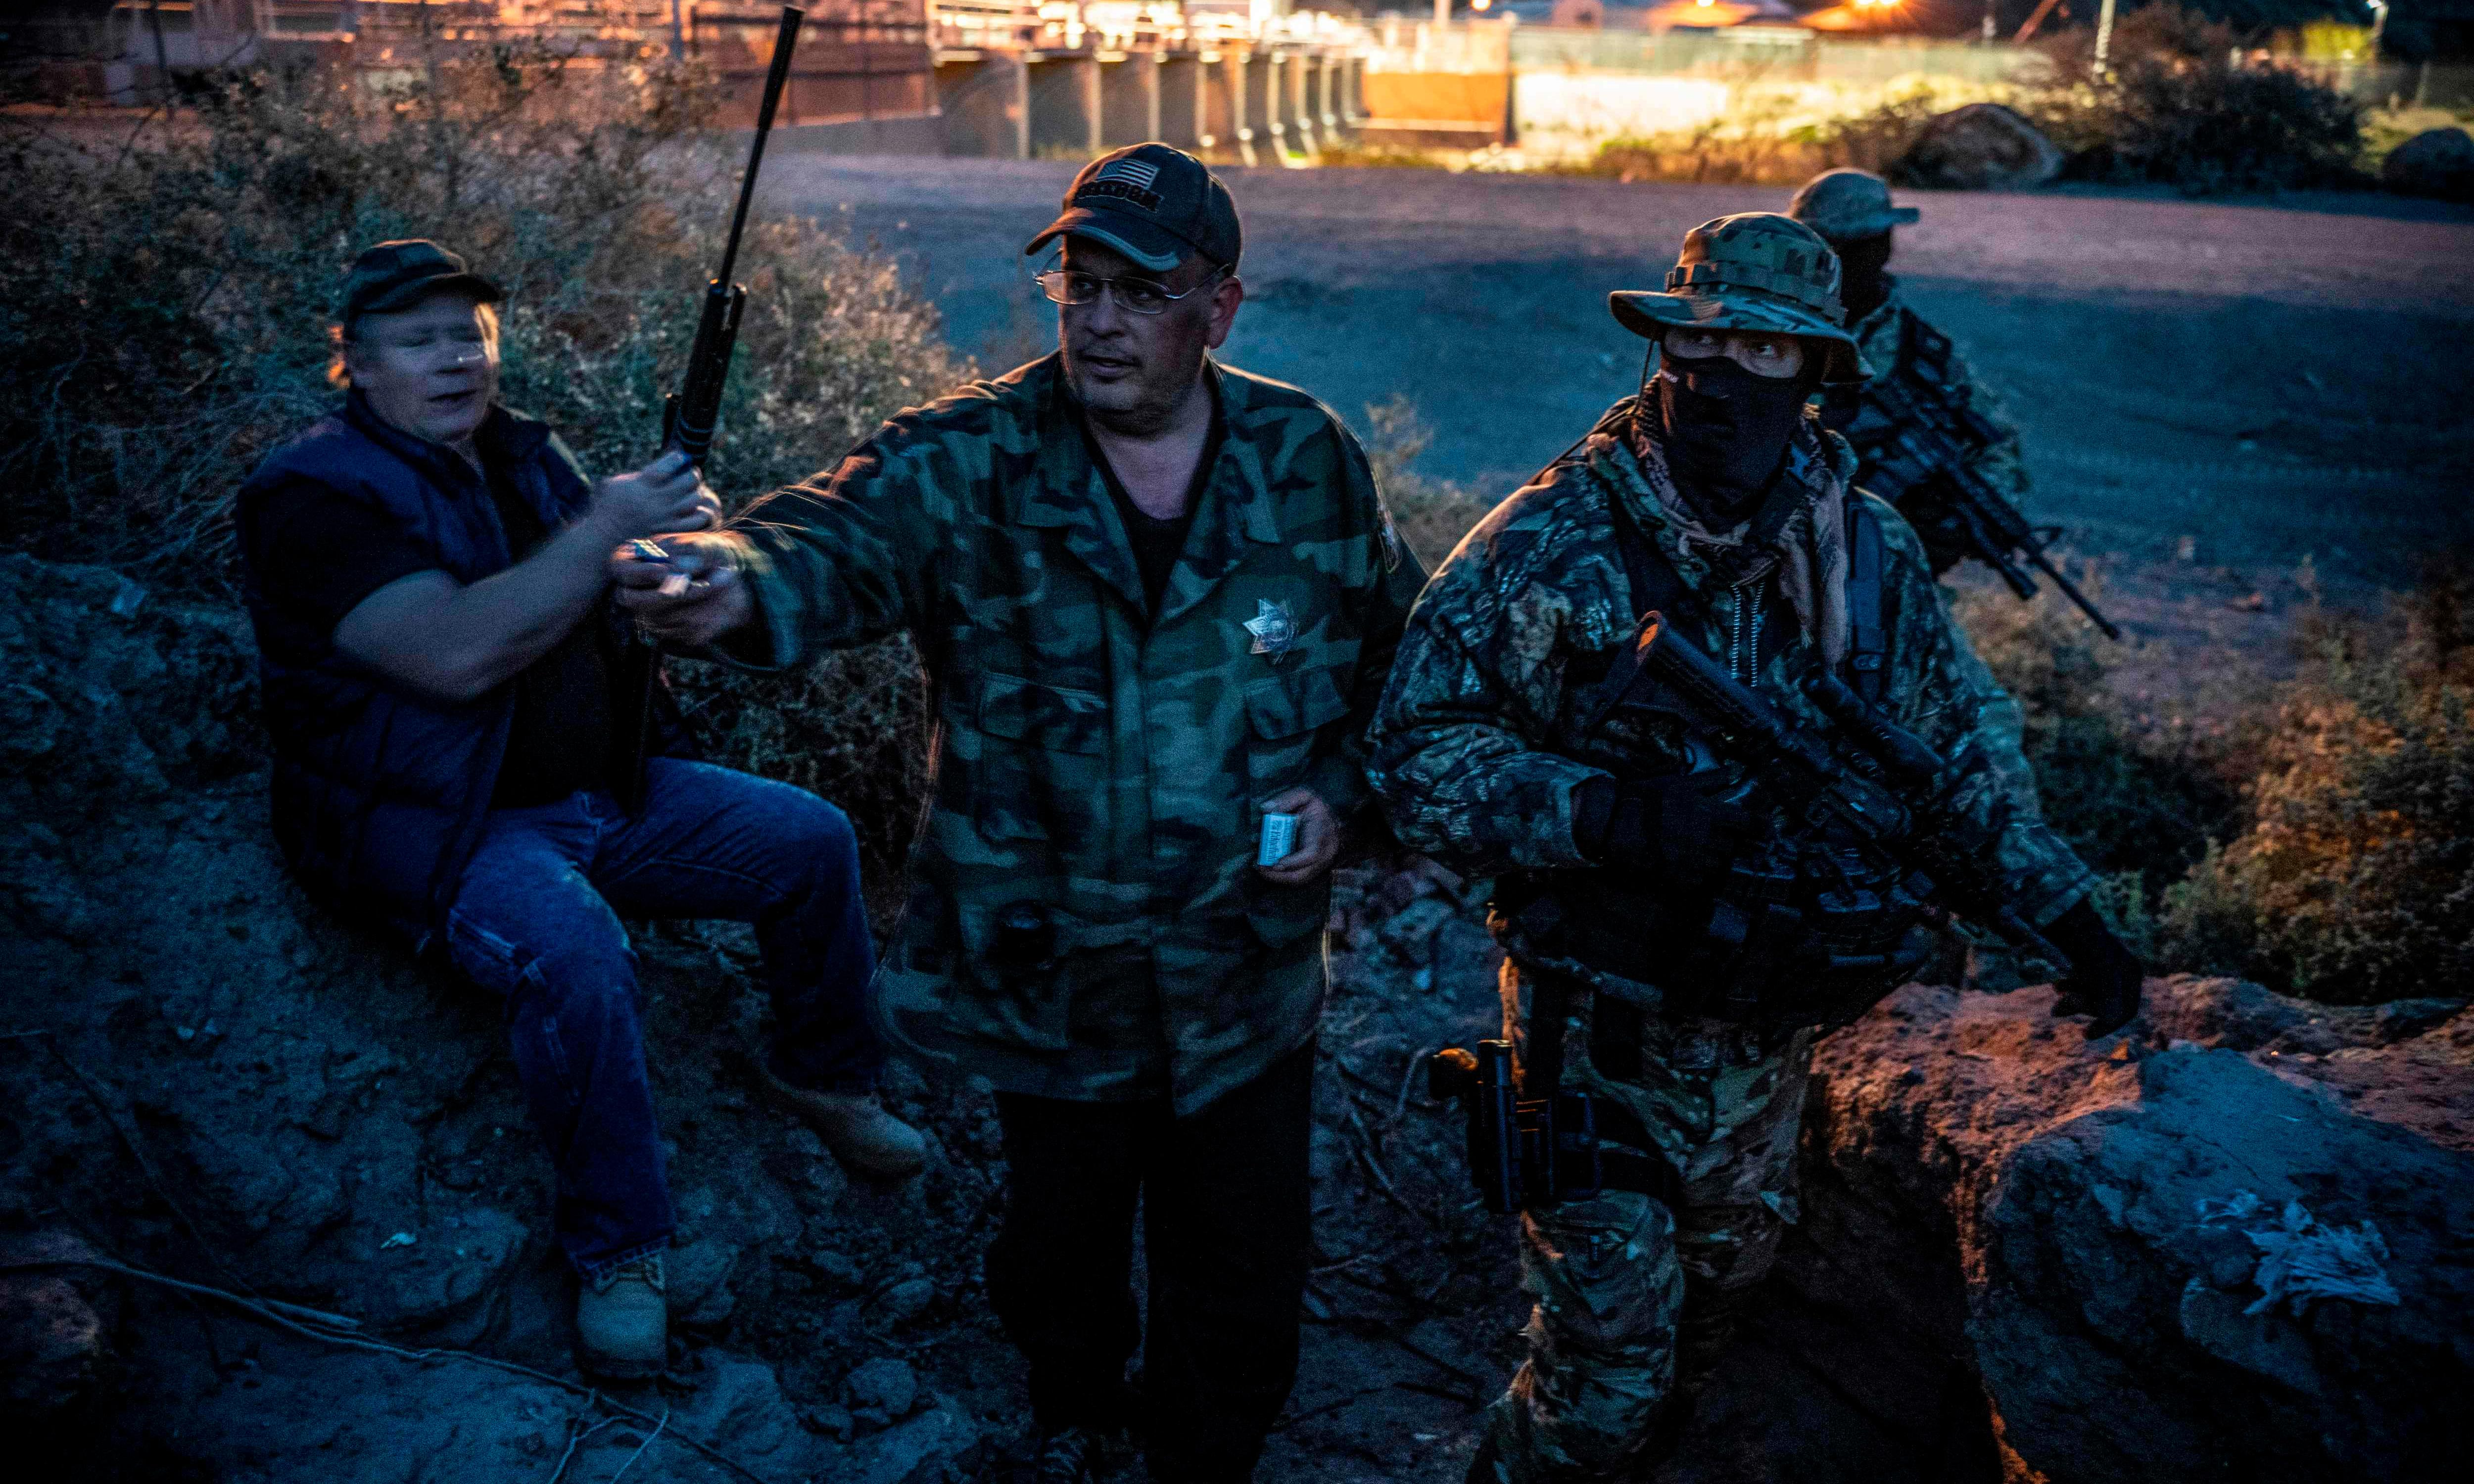 Member of armed militia who detained migrants faced similar charges in 2006